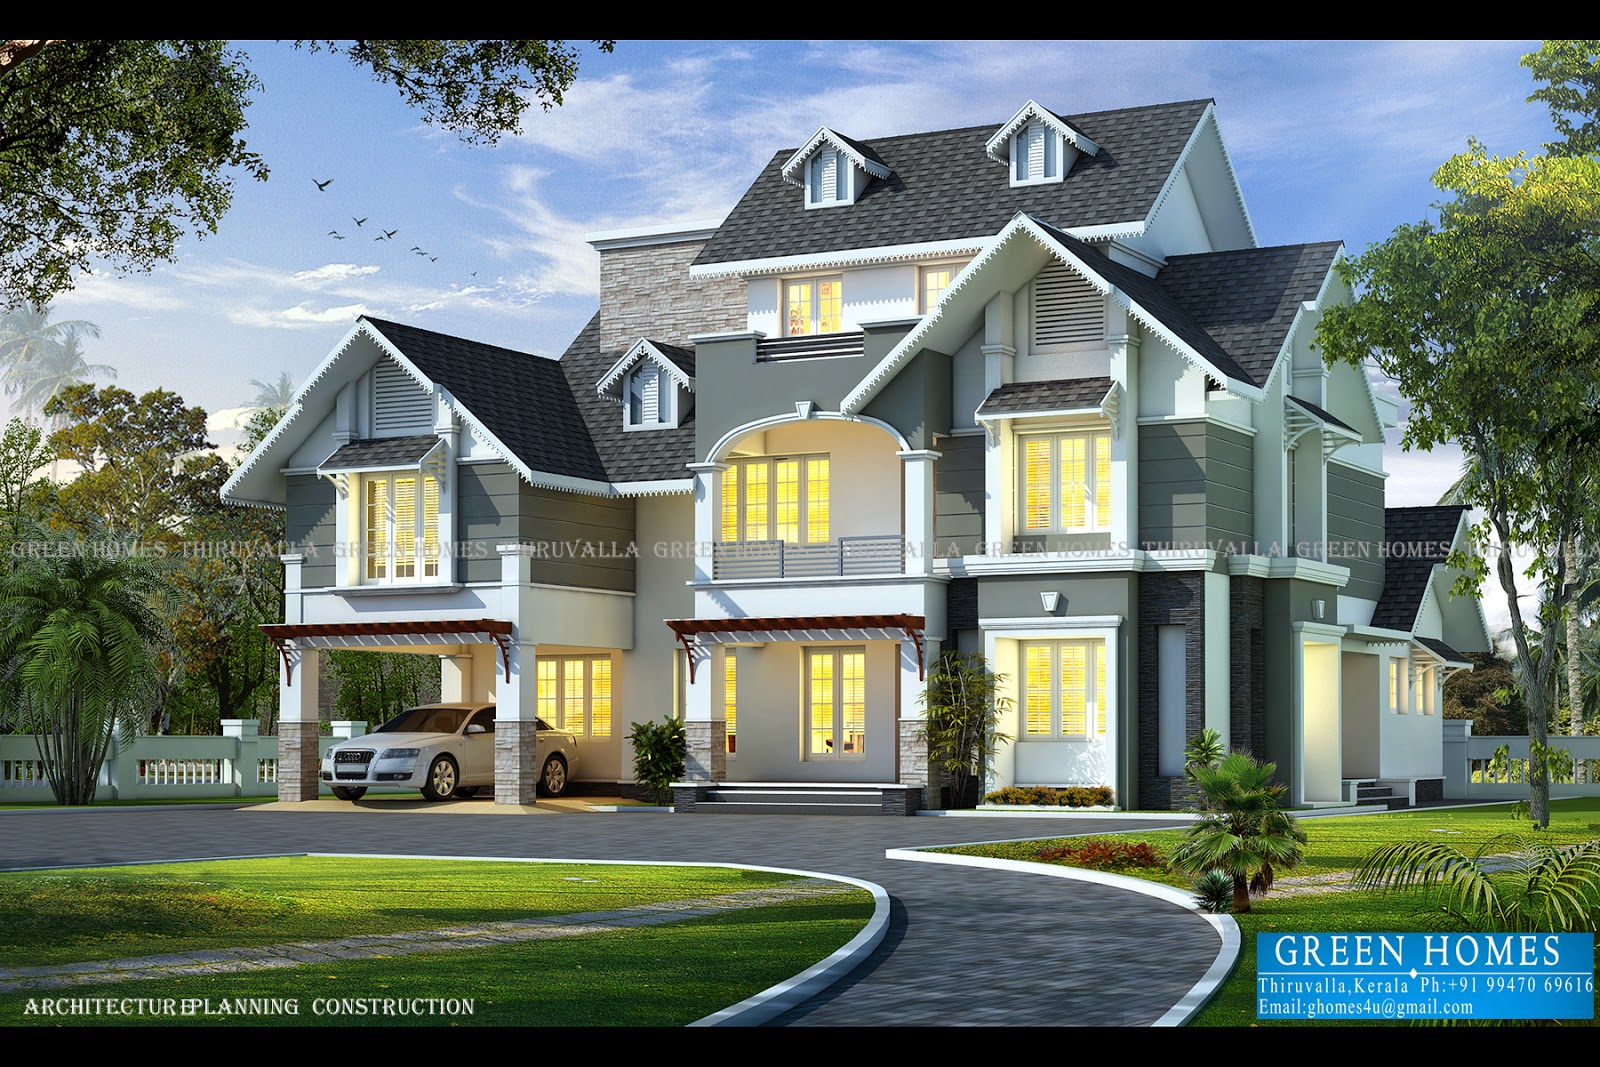 Green homes awesome european style house in 3650 sq feet for Green home builders